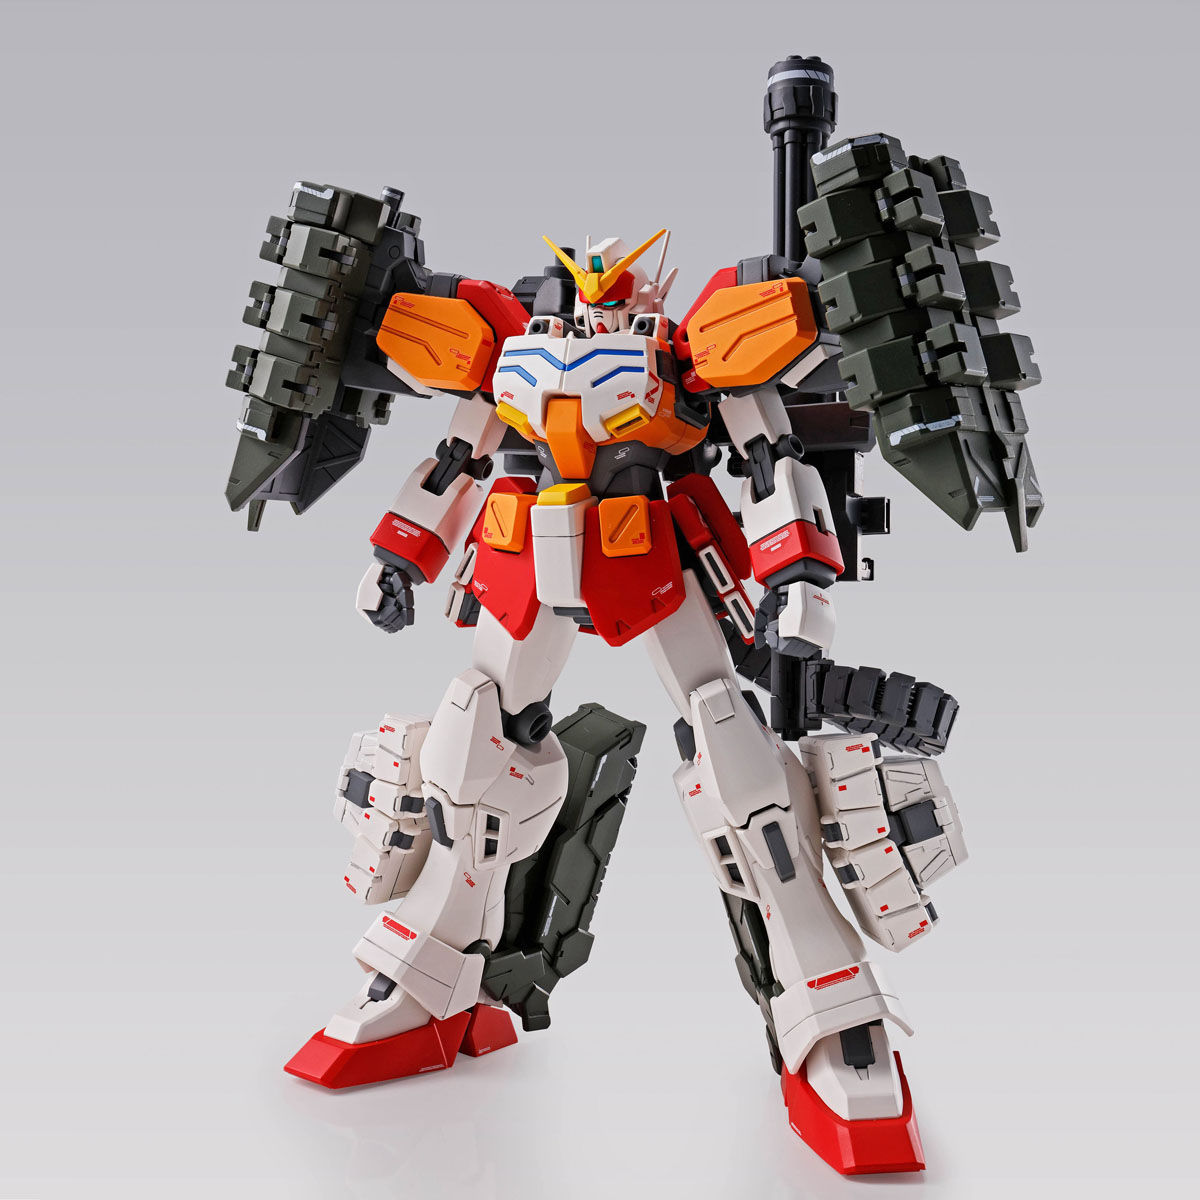 MG 1/100 GUNDAM HEAVYARMS EW (IGEL UNIT) [Nov 2020 Delivery]